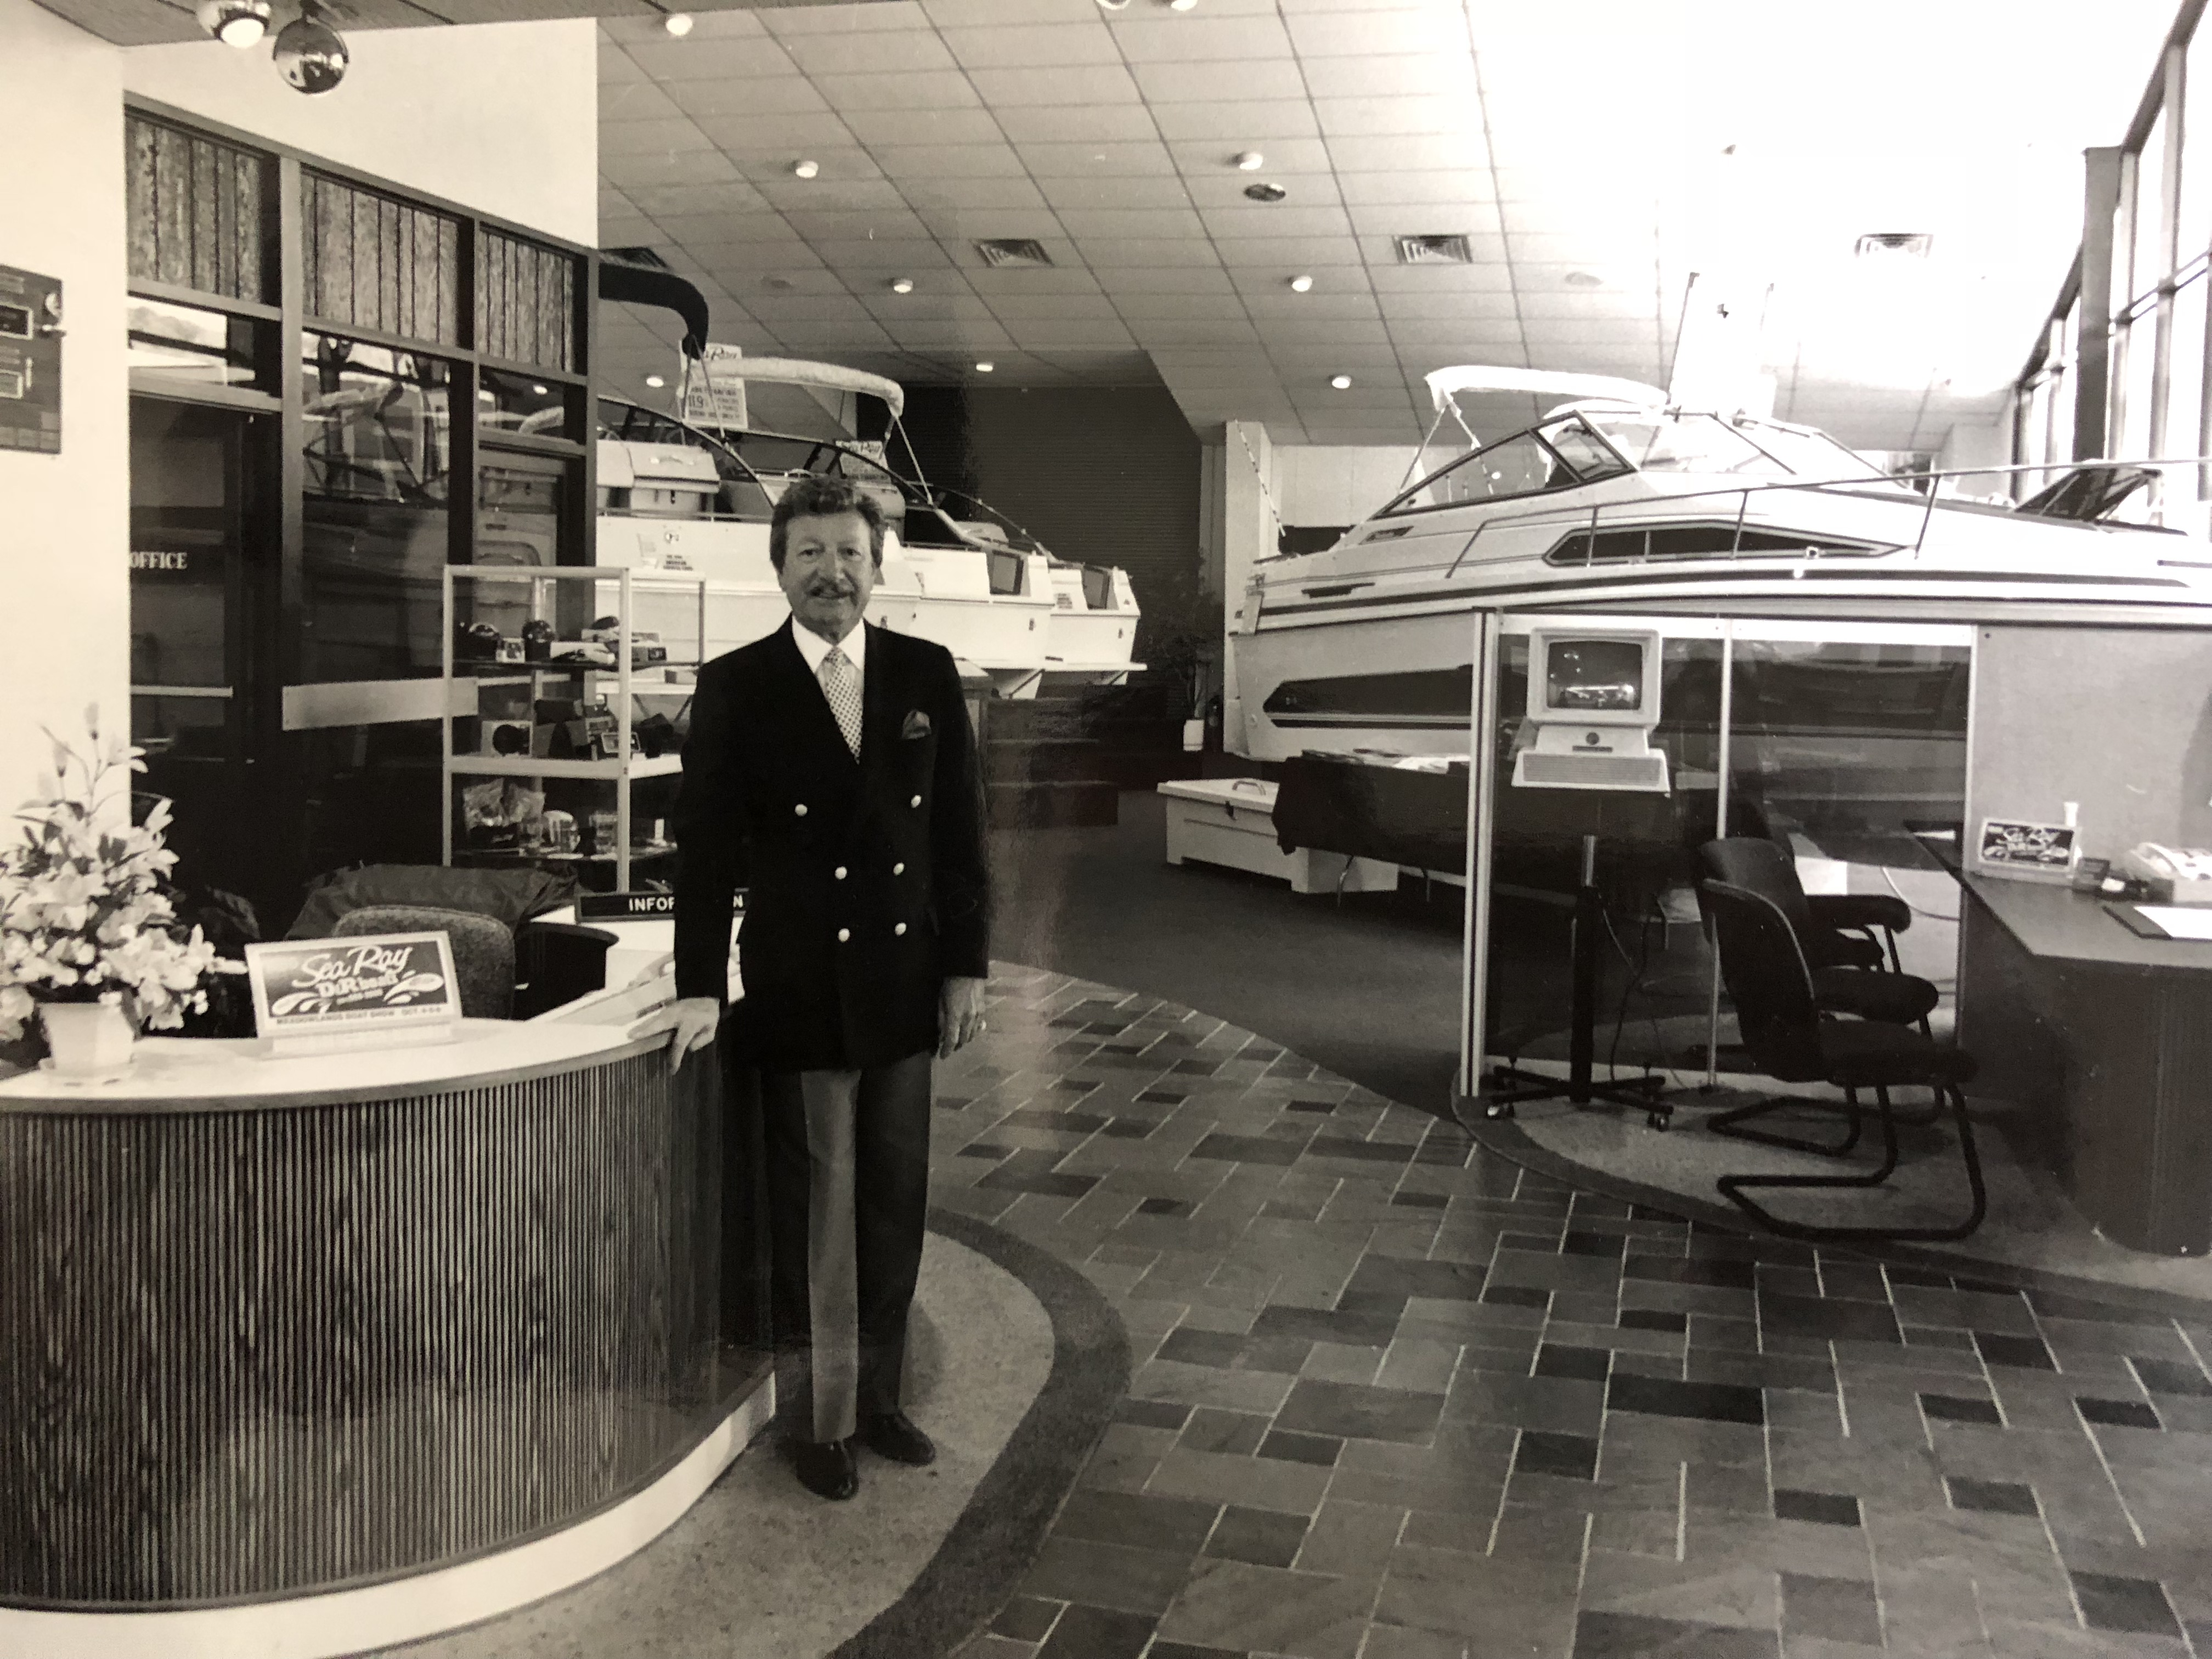 Dominic J Barone, D&R Boat World Founder